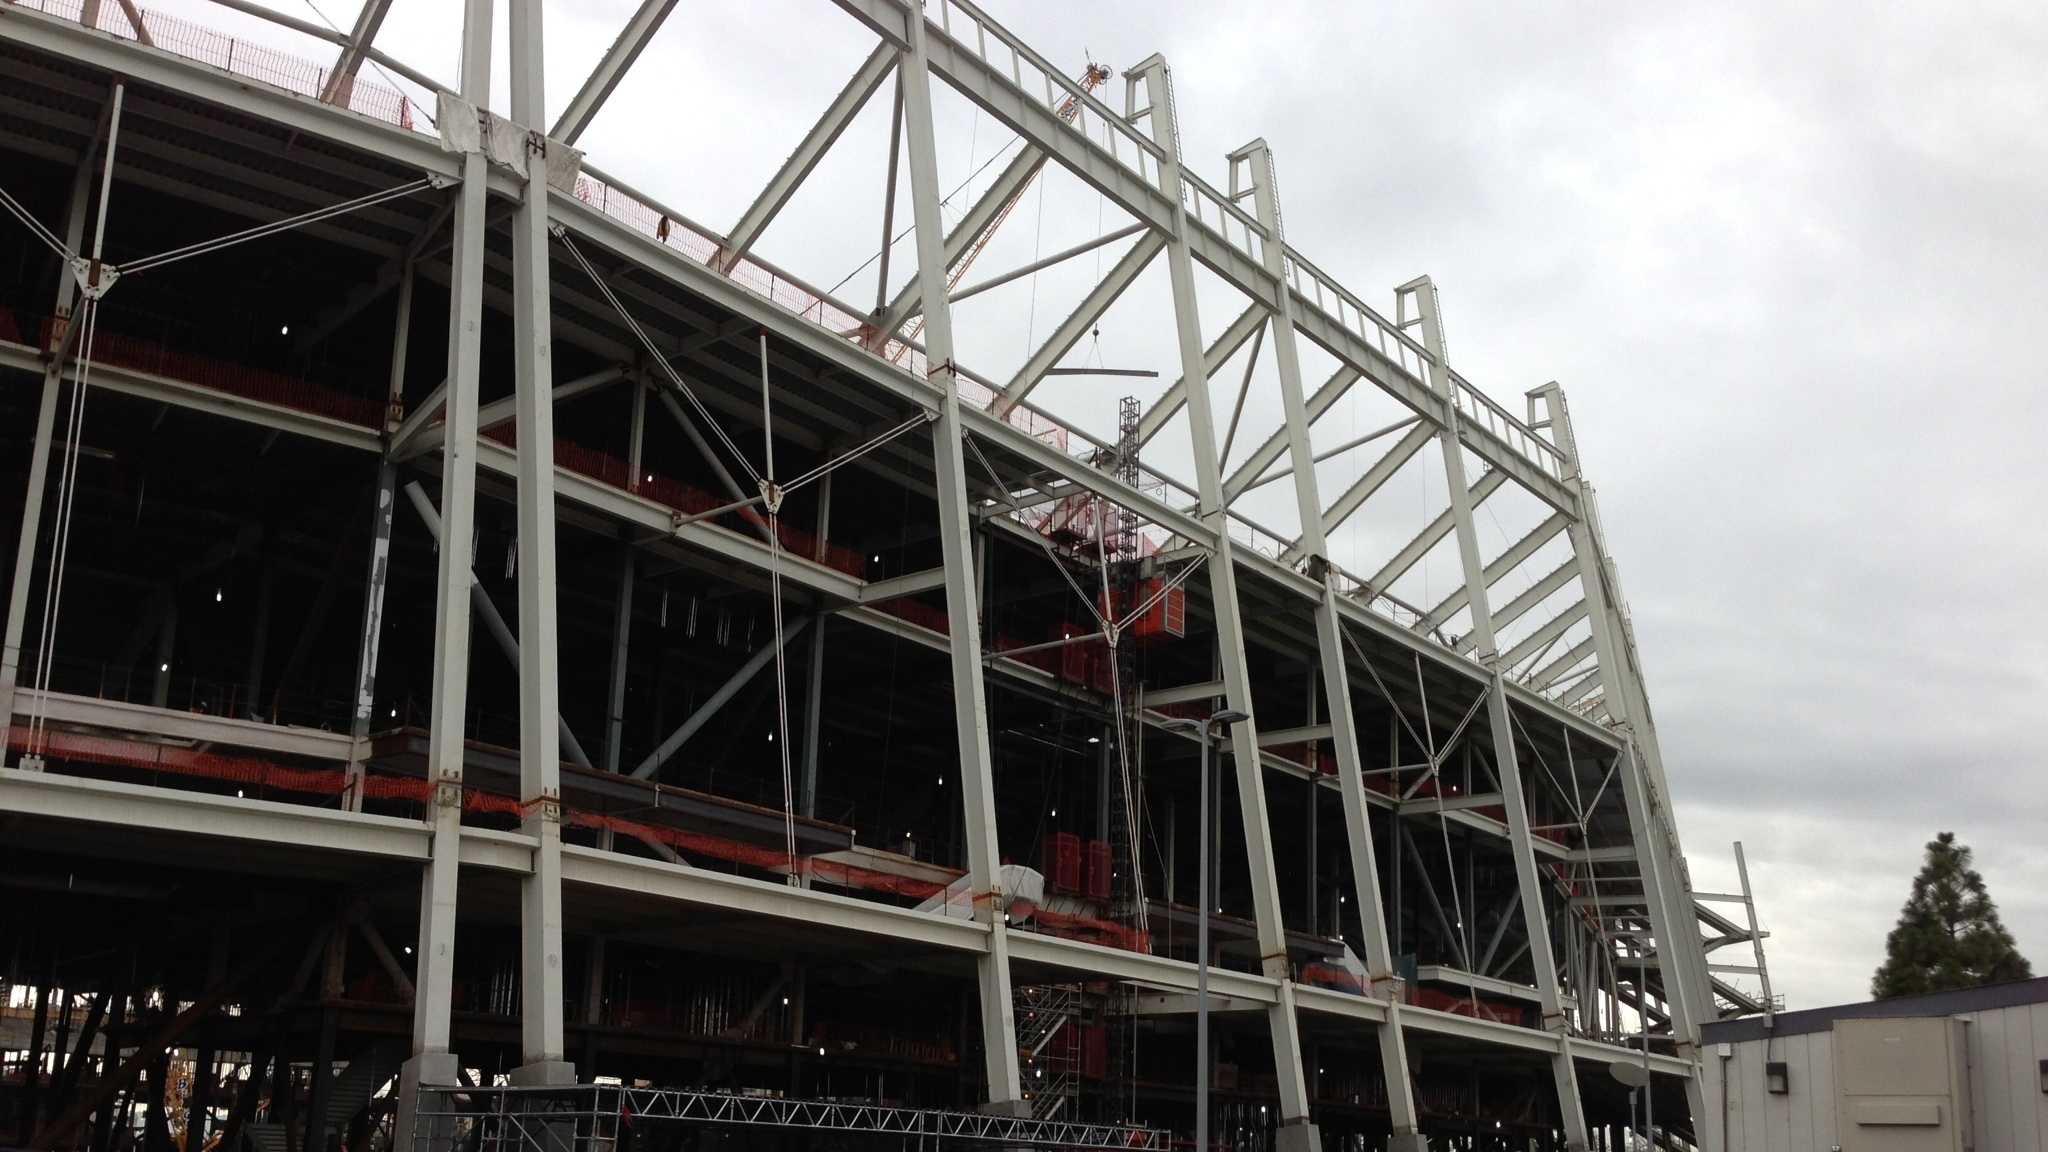 The new stadium is estimated to open in July 2014.